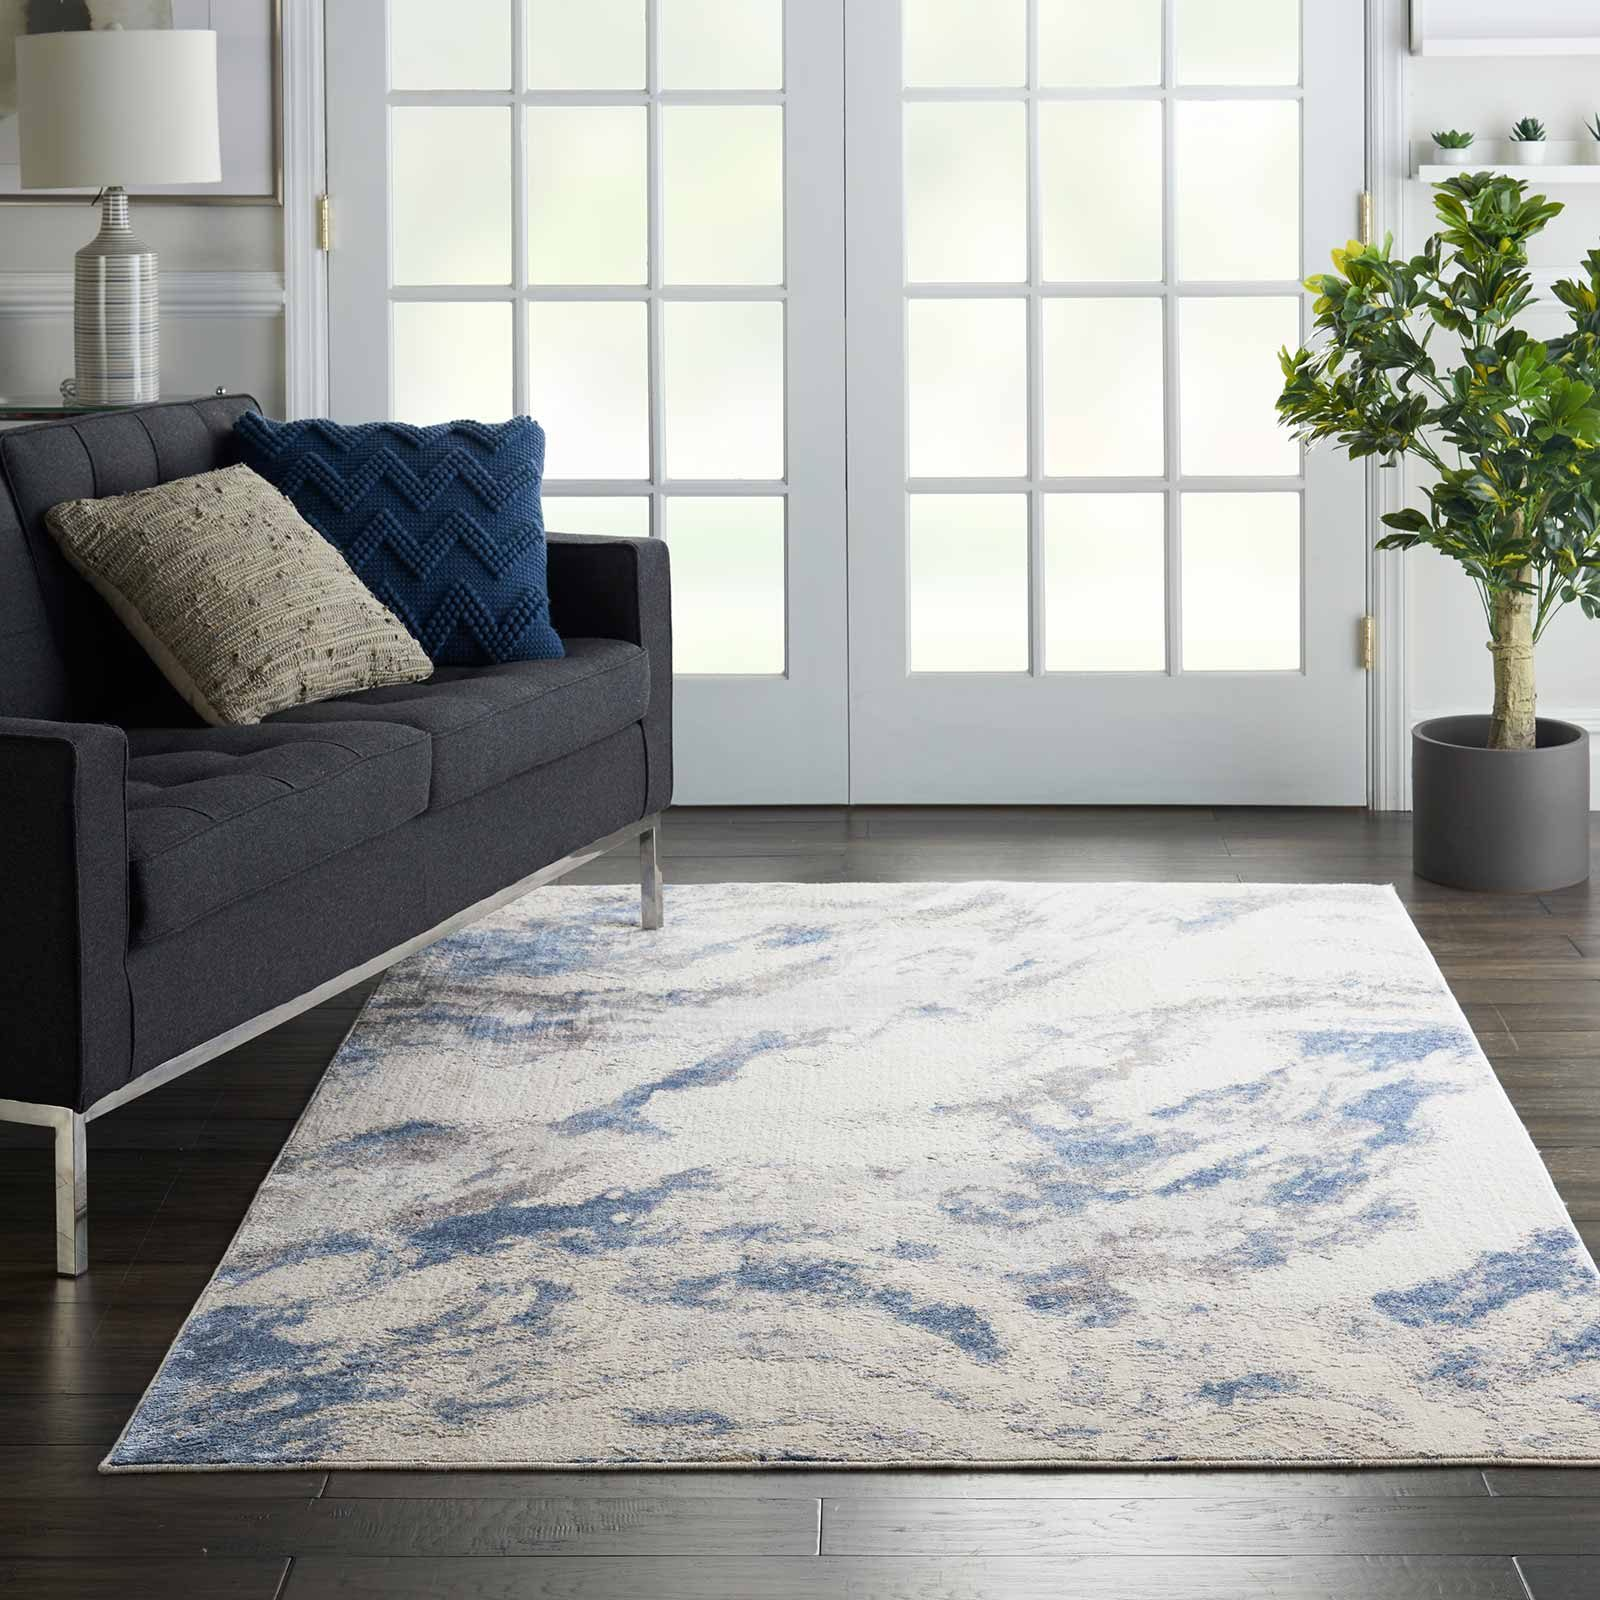 Nourison rug Silky Textures SLY03 BLUE IVORY GREY 5x7 099446710086 interior 1 C